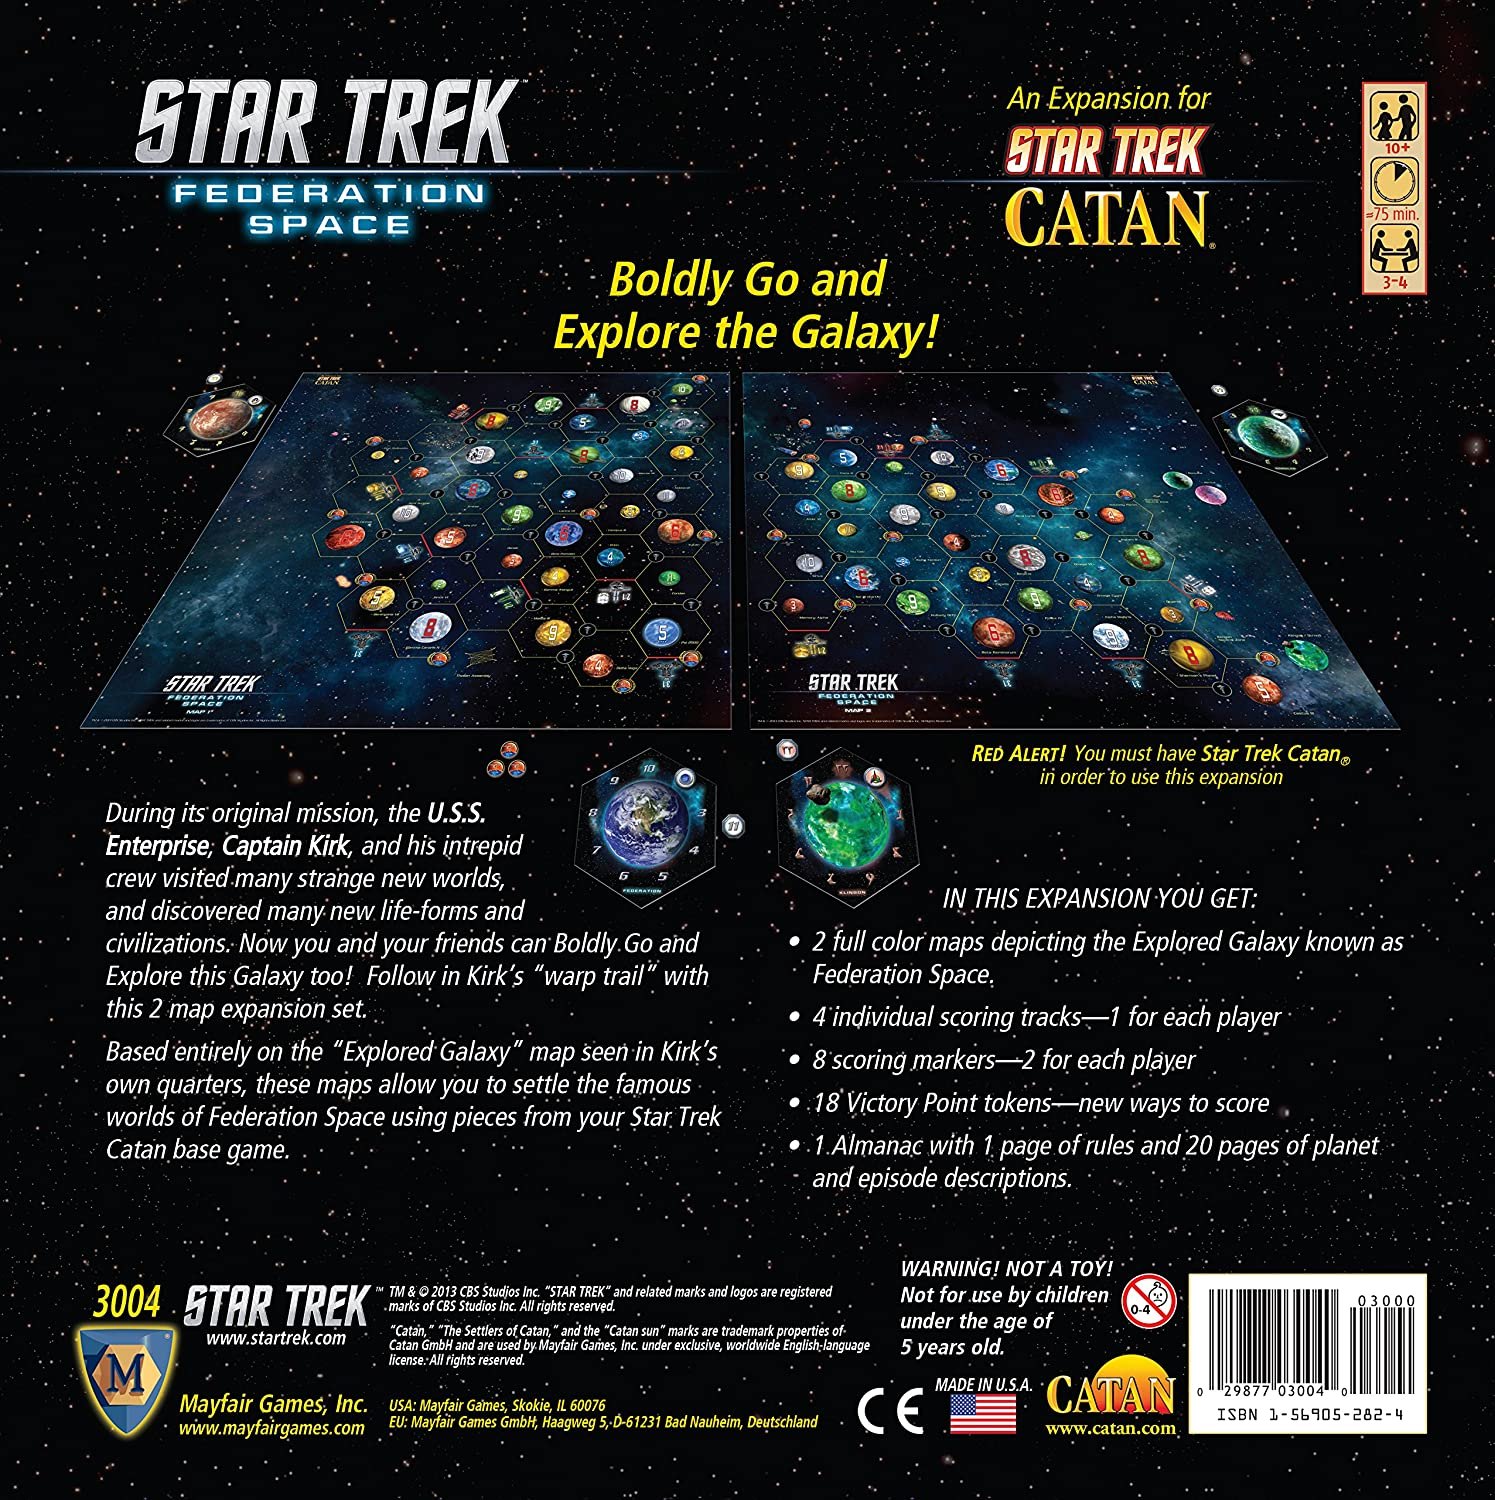 Amazoncom Star Trek Federation Space A Two Map Expansion for